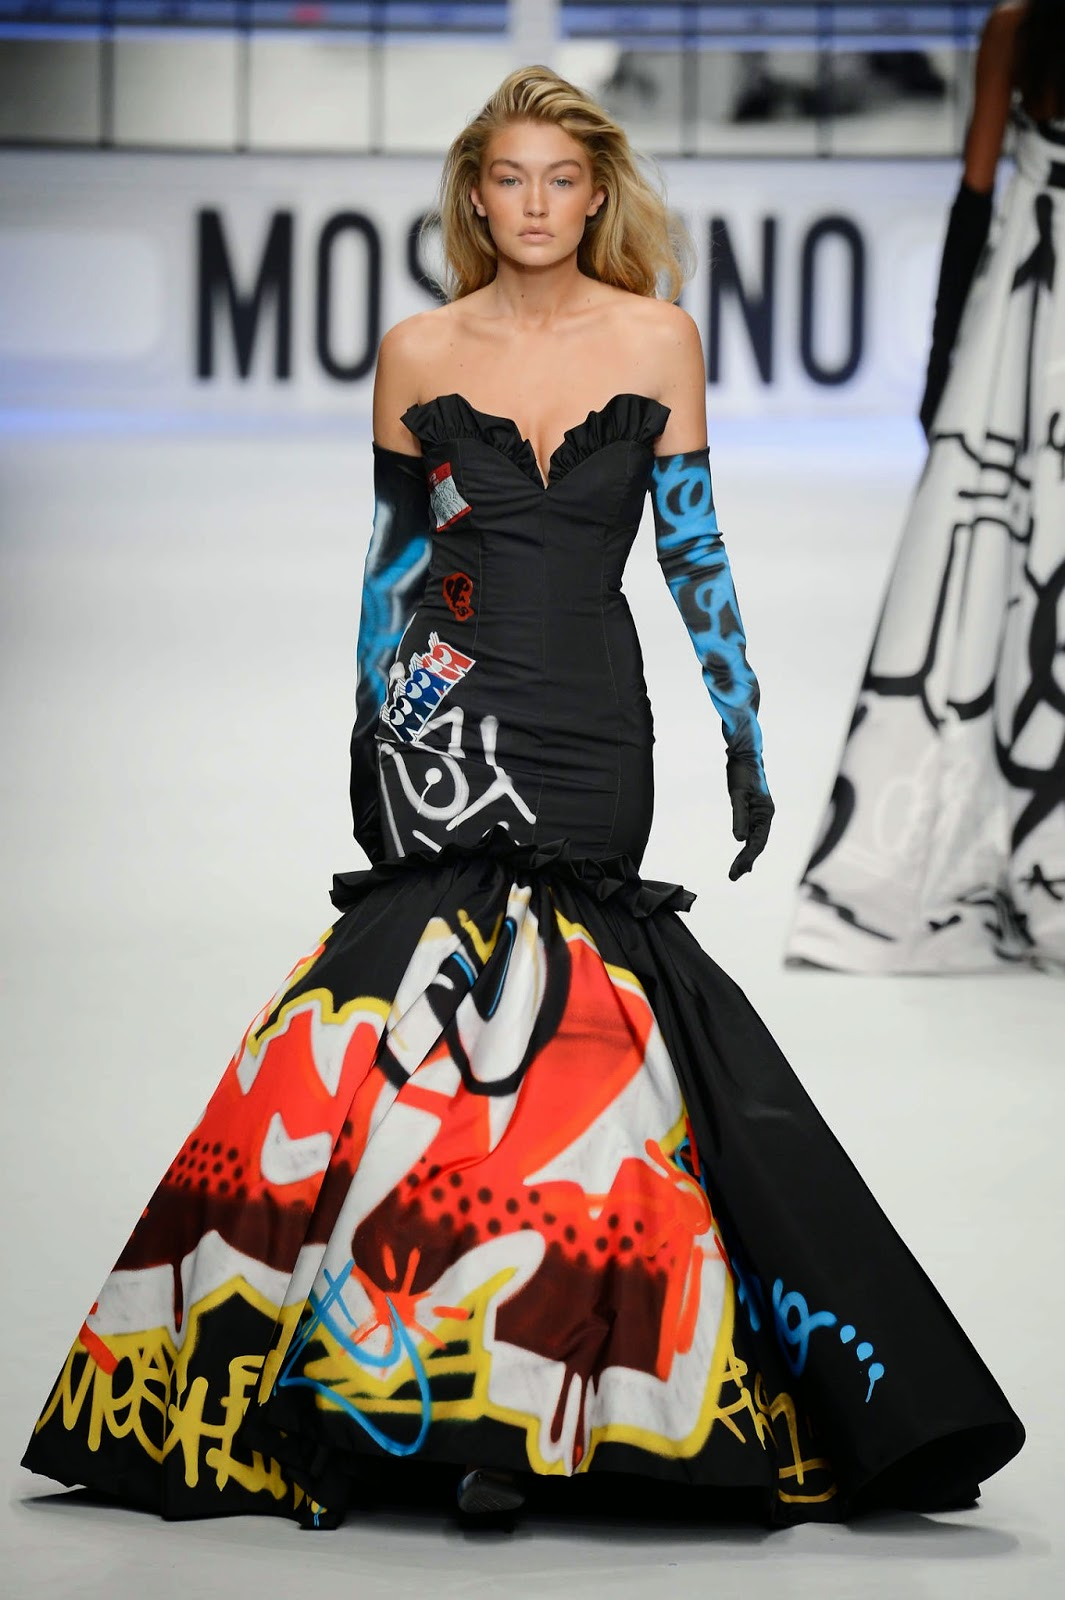 Gigi Hadid models vibrant designs for the Moschino Fall/Winter 2015 London Fashion Week Show